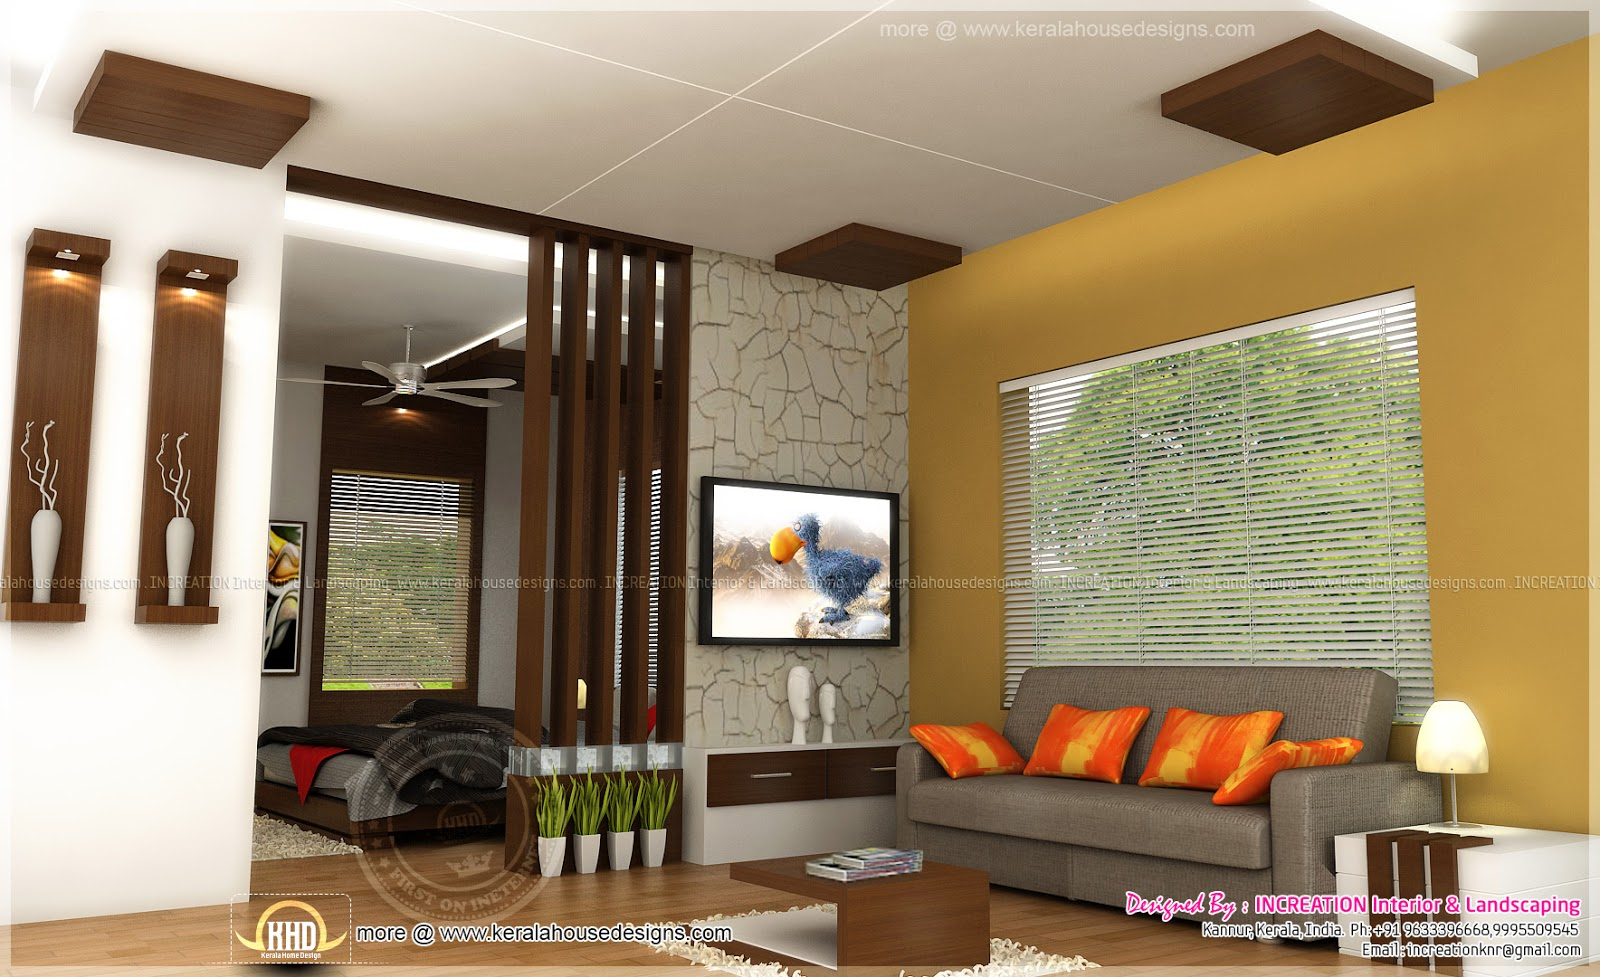 Interior designs from kannur kerala home kerala plans for Full home interior design